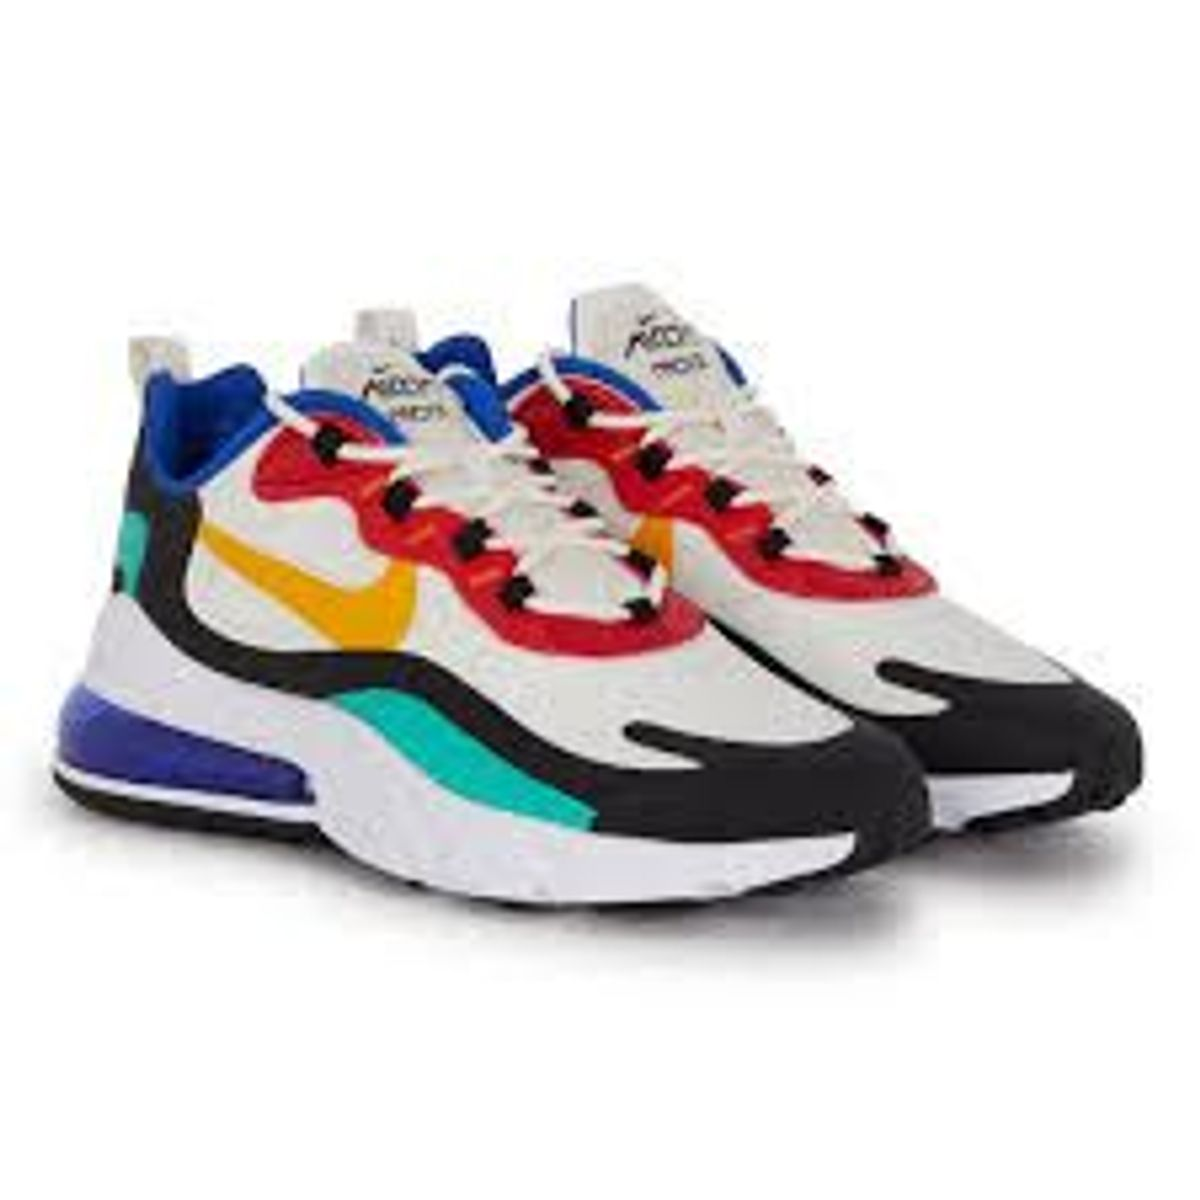 air max 270 react colorido